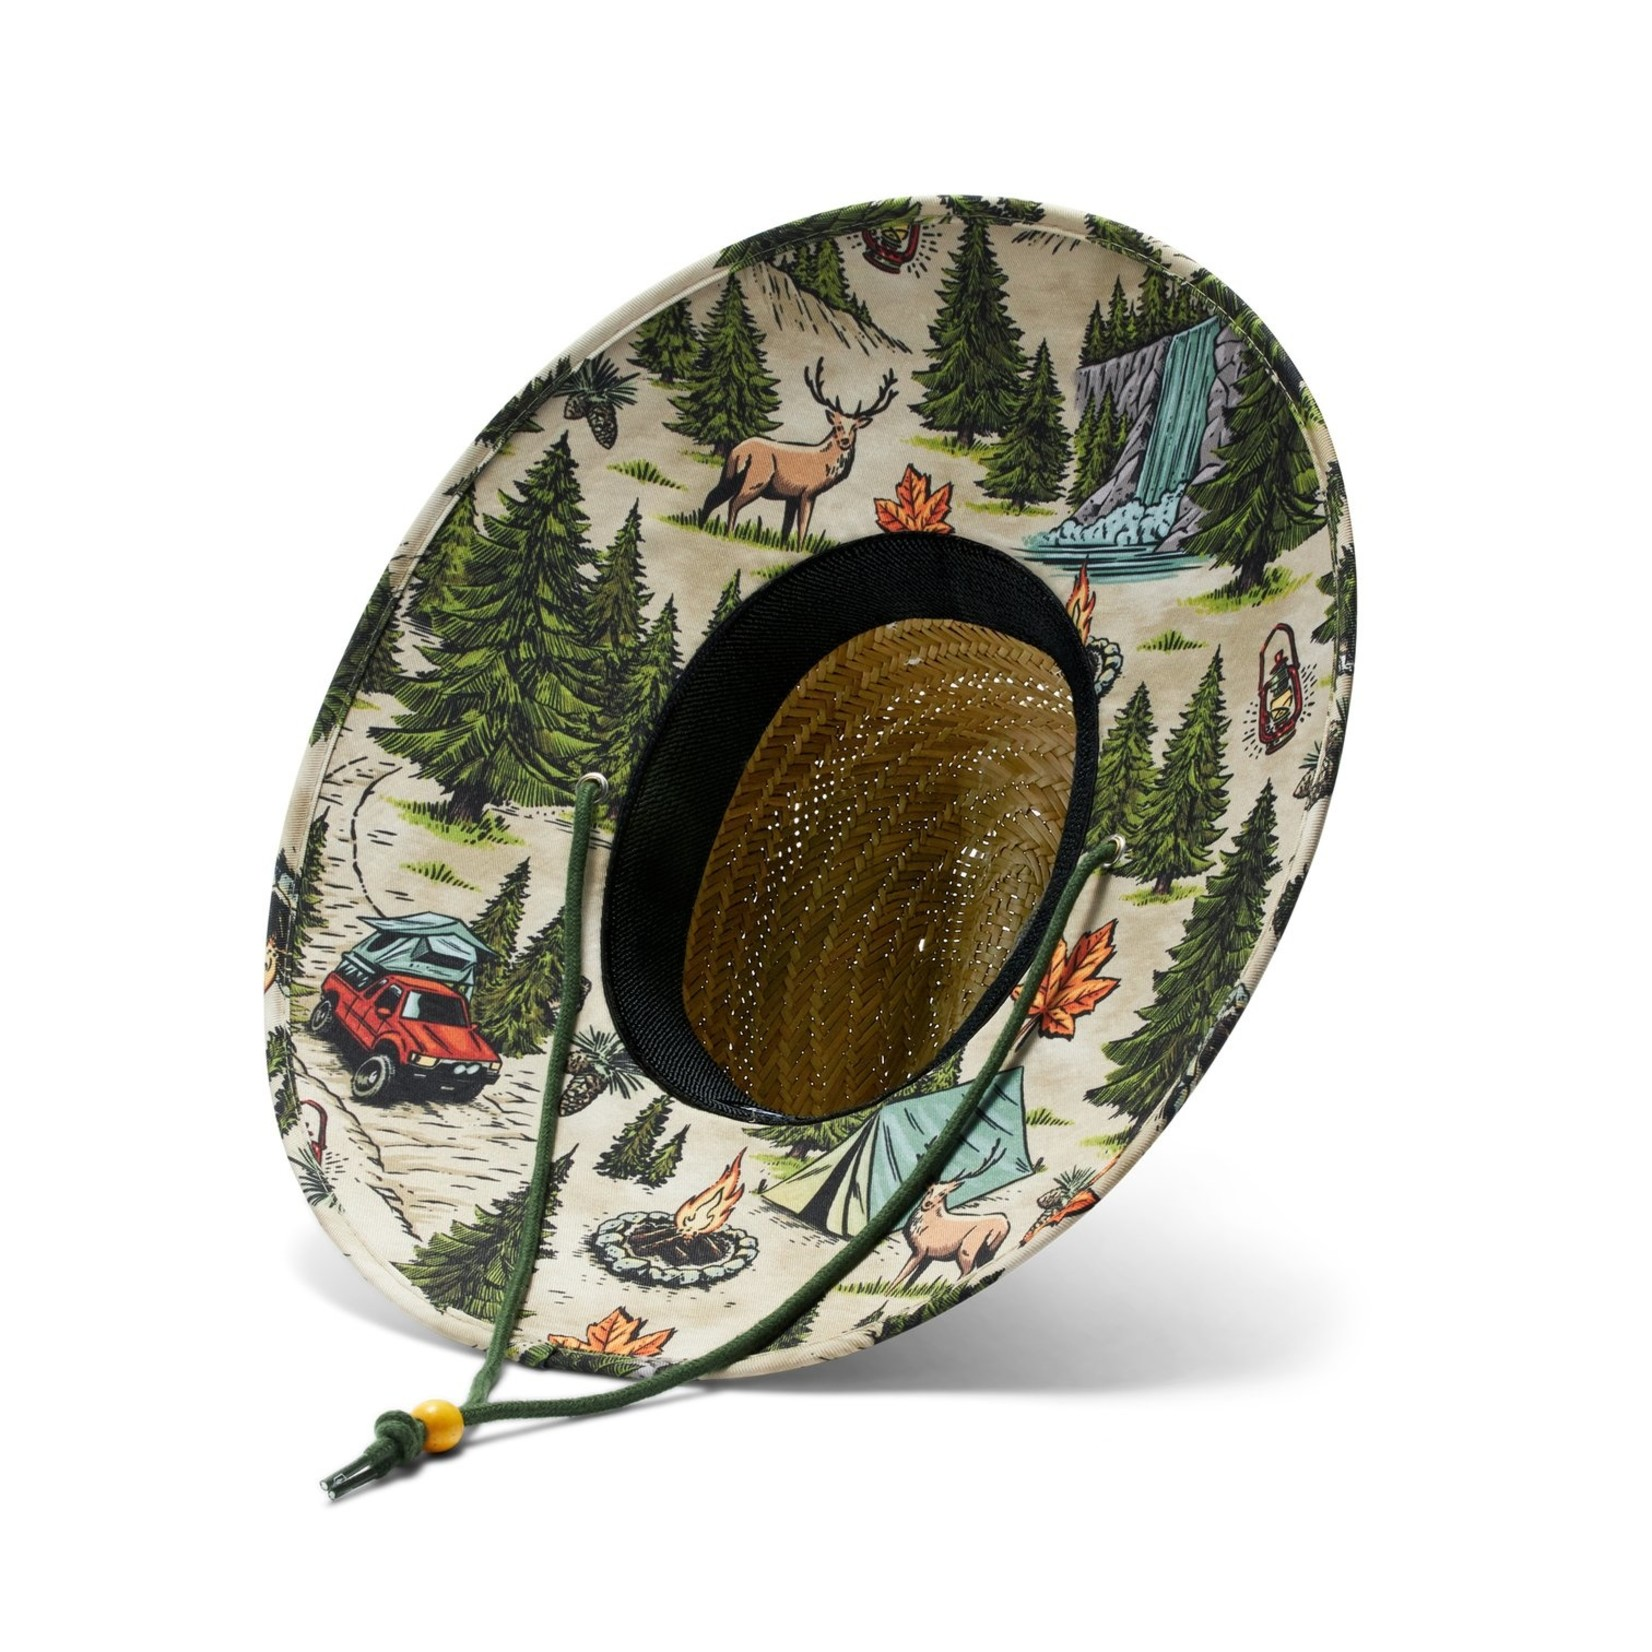 Hemlock Hat Co. Hemlock Hat Co. - Base Camp